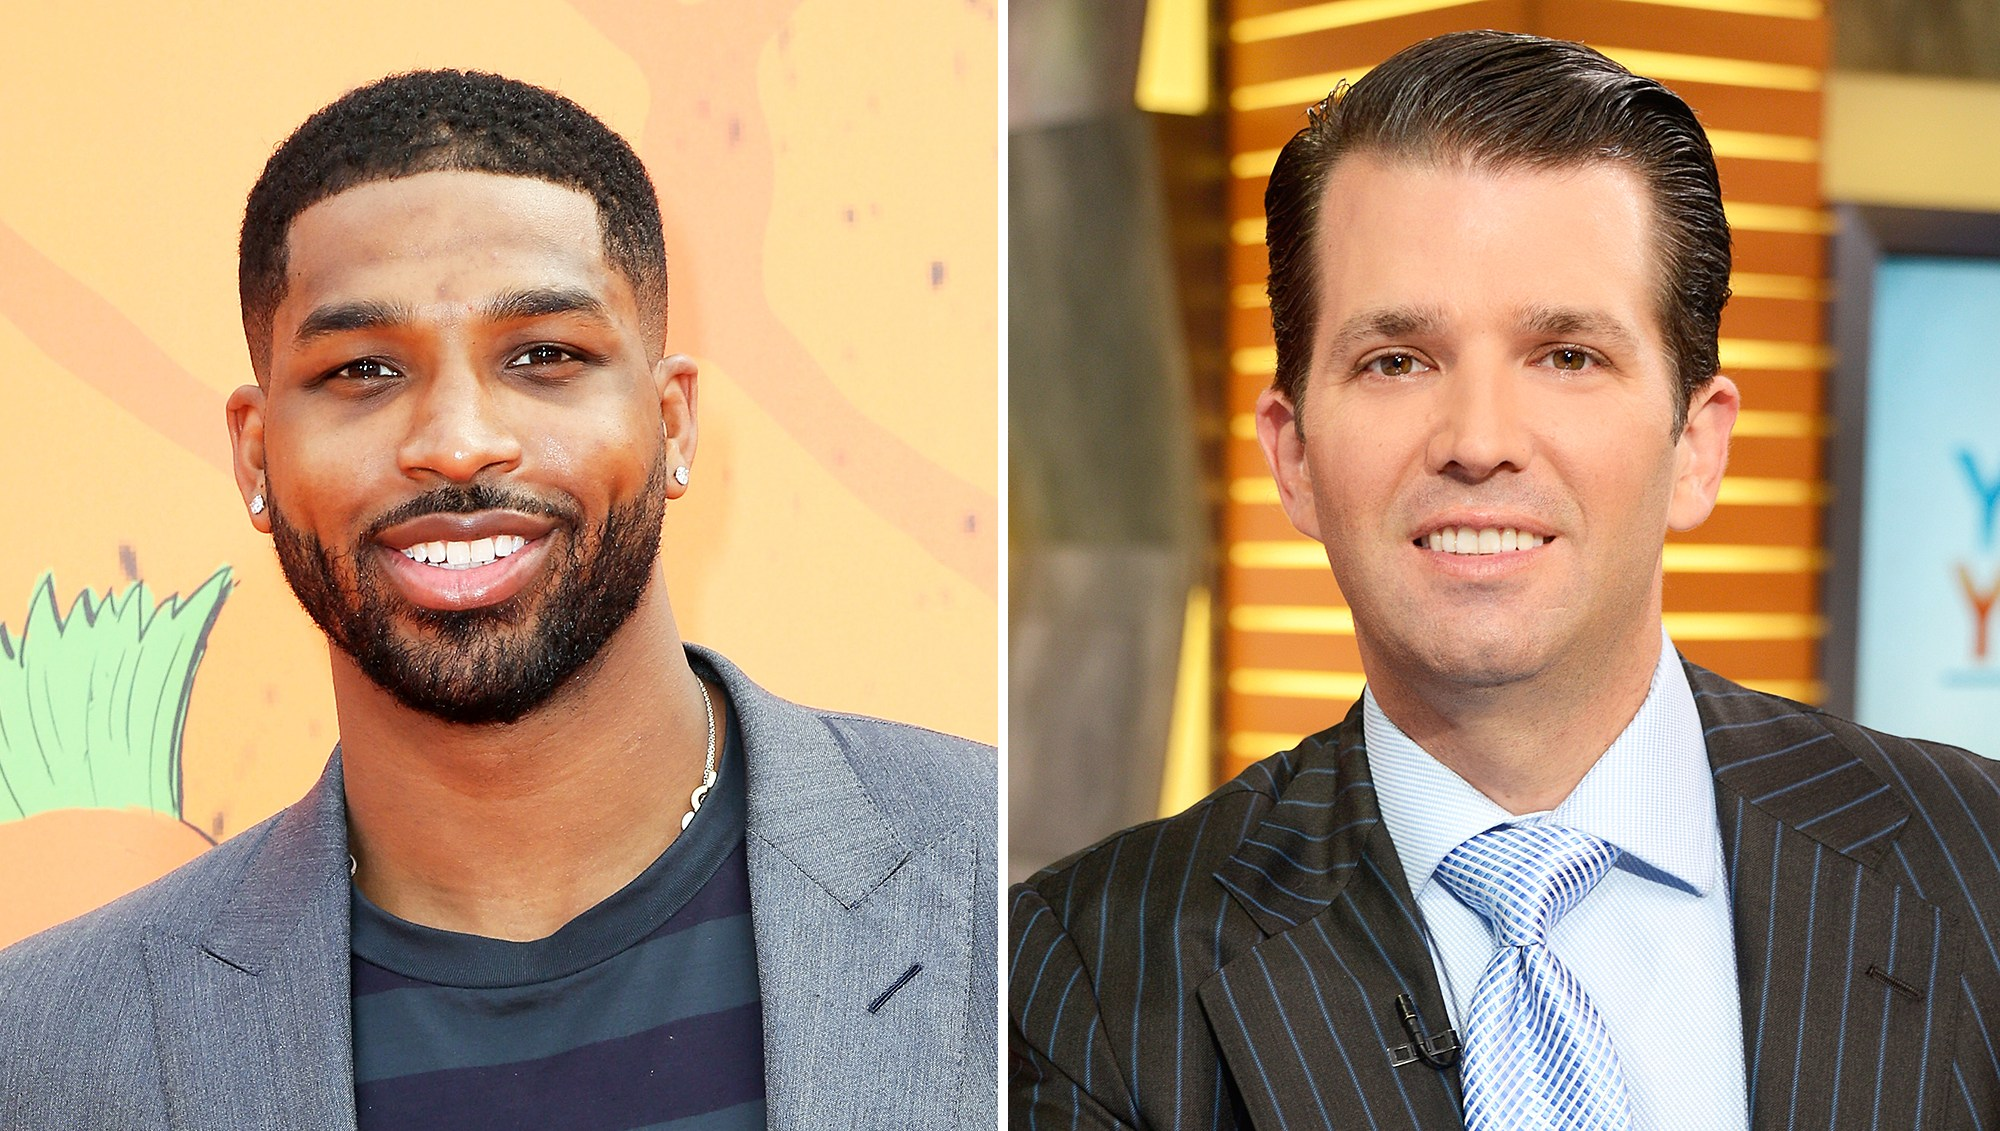 Tristan Thompson Donald Trump Jr Cheating Scandals